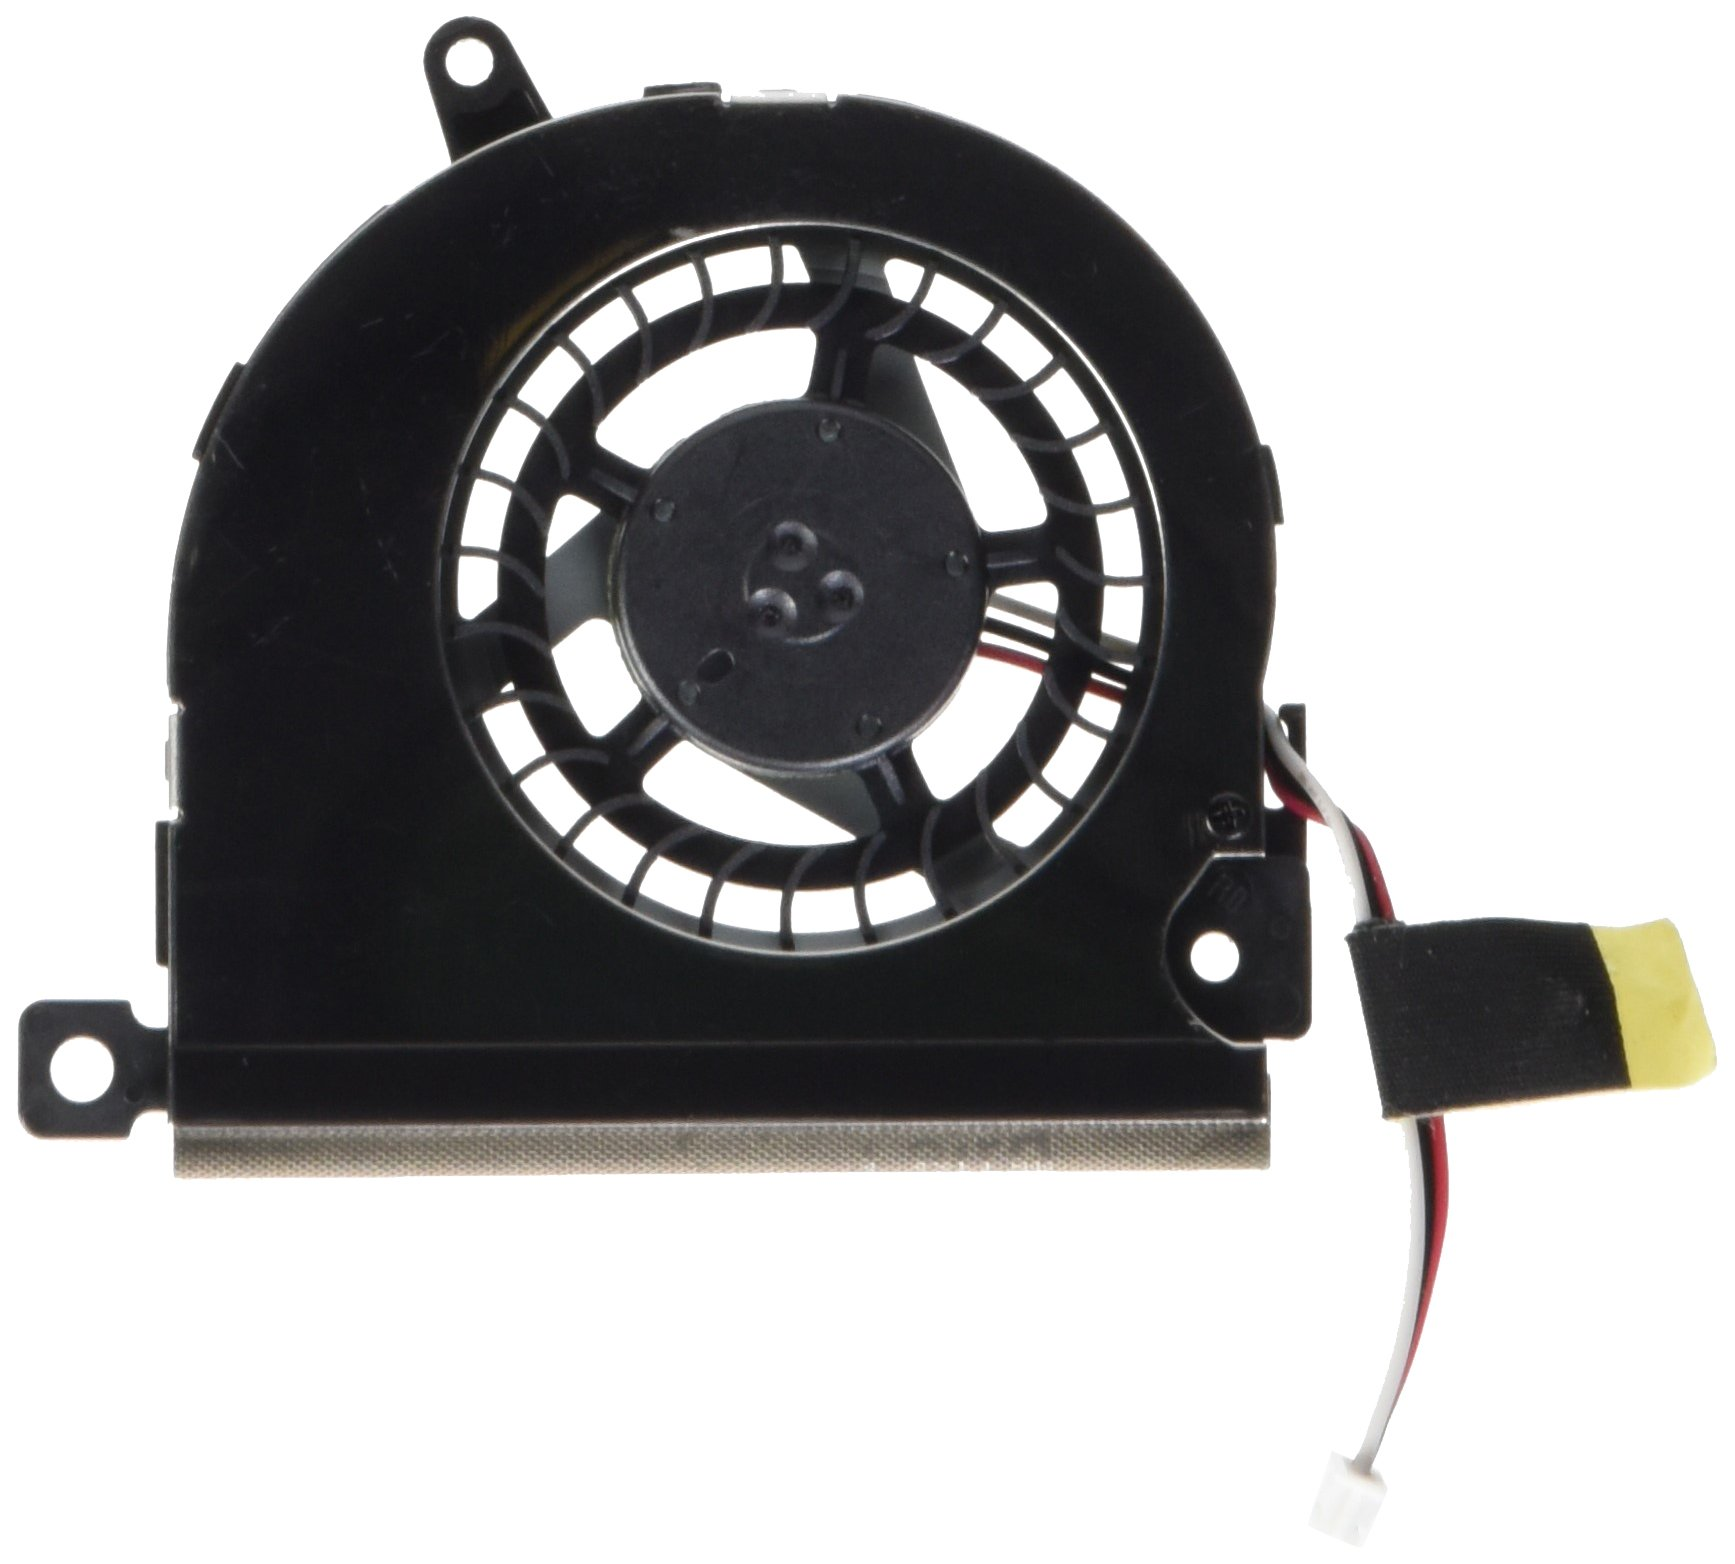 Cooler Samsung BA31-00112A Fan